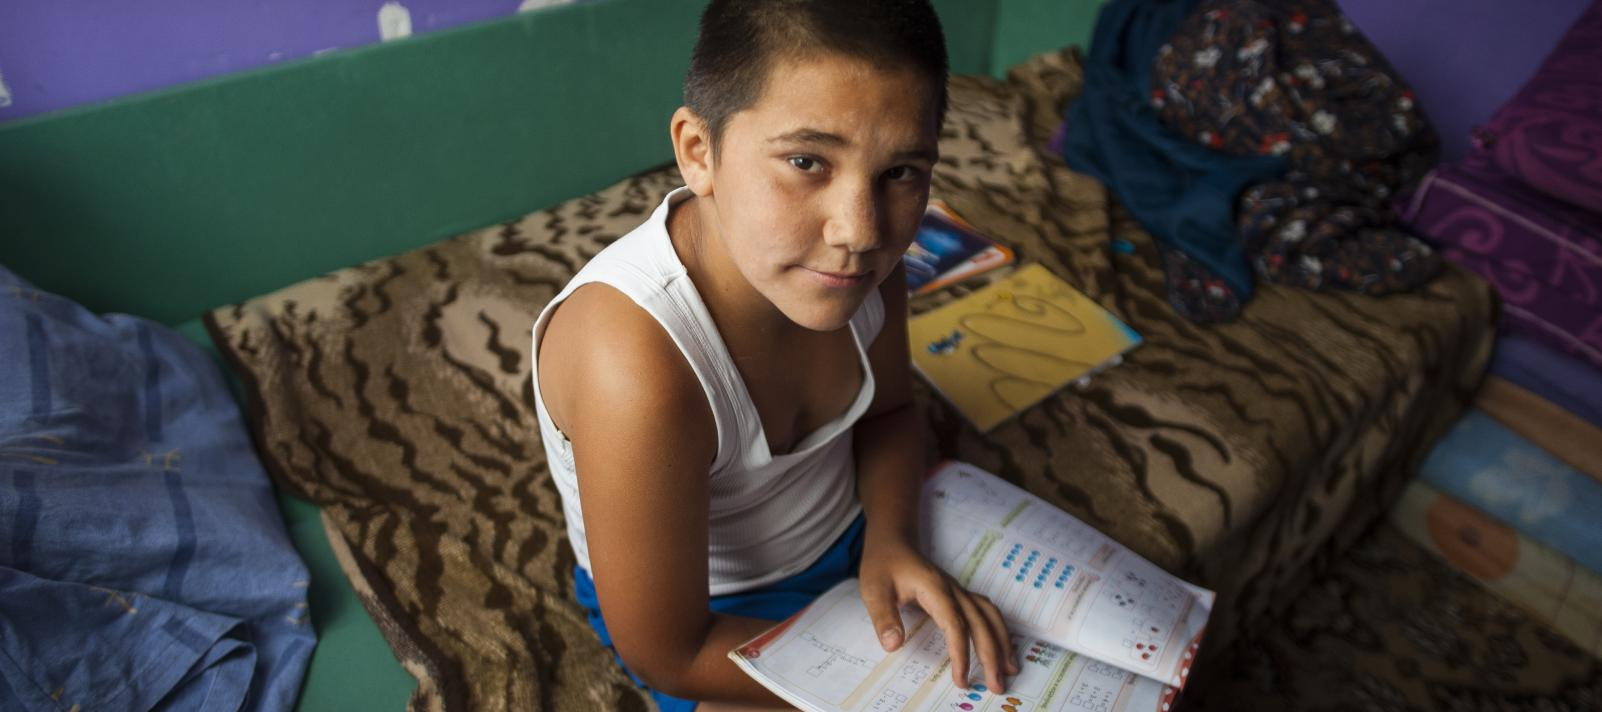 Roma boy, Aca, studying math from a school book